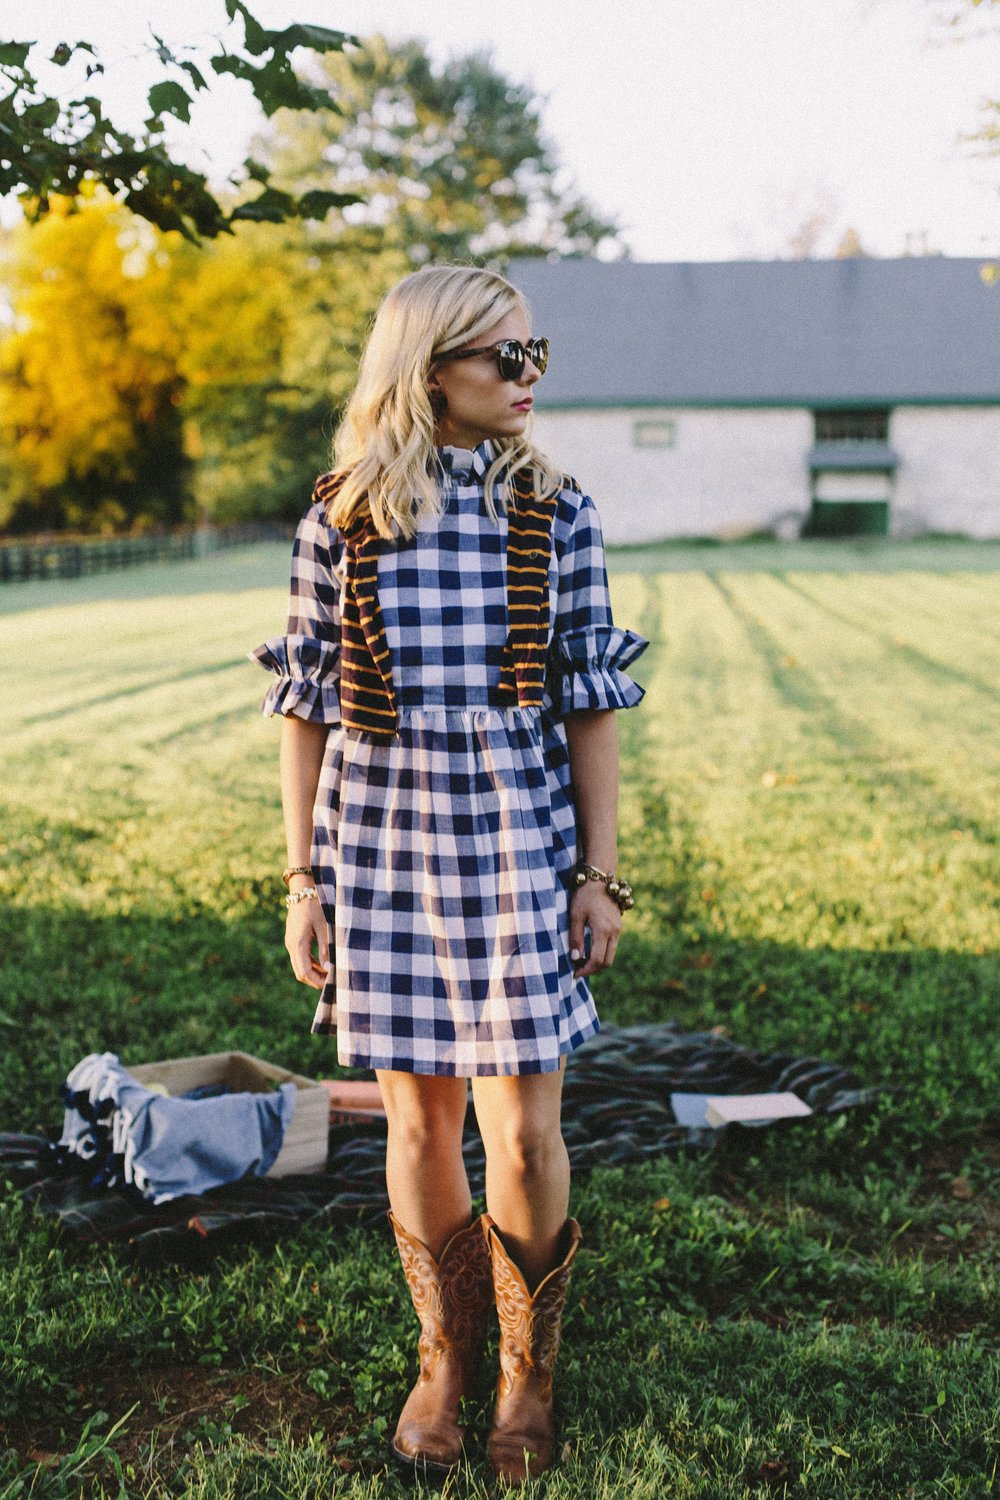 The perfect fall dress - The Nancy Jane Dress in Gingham